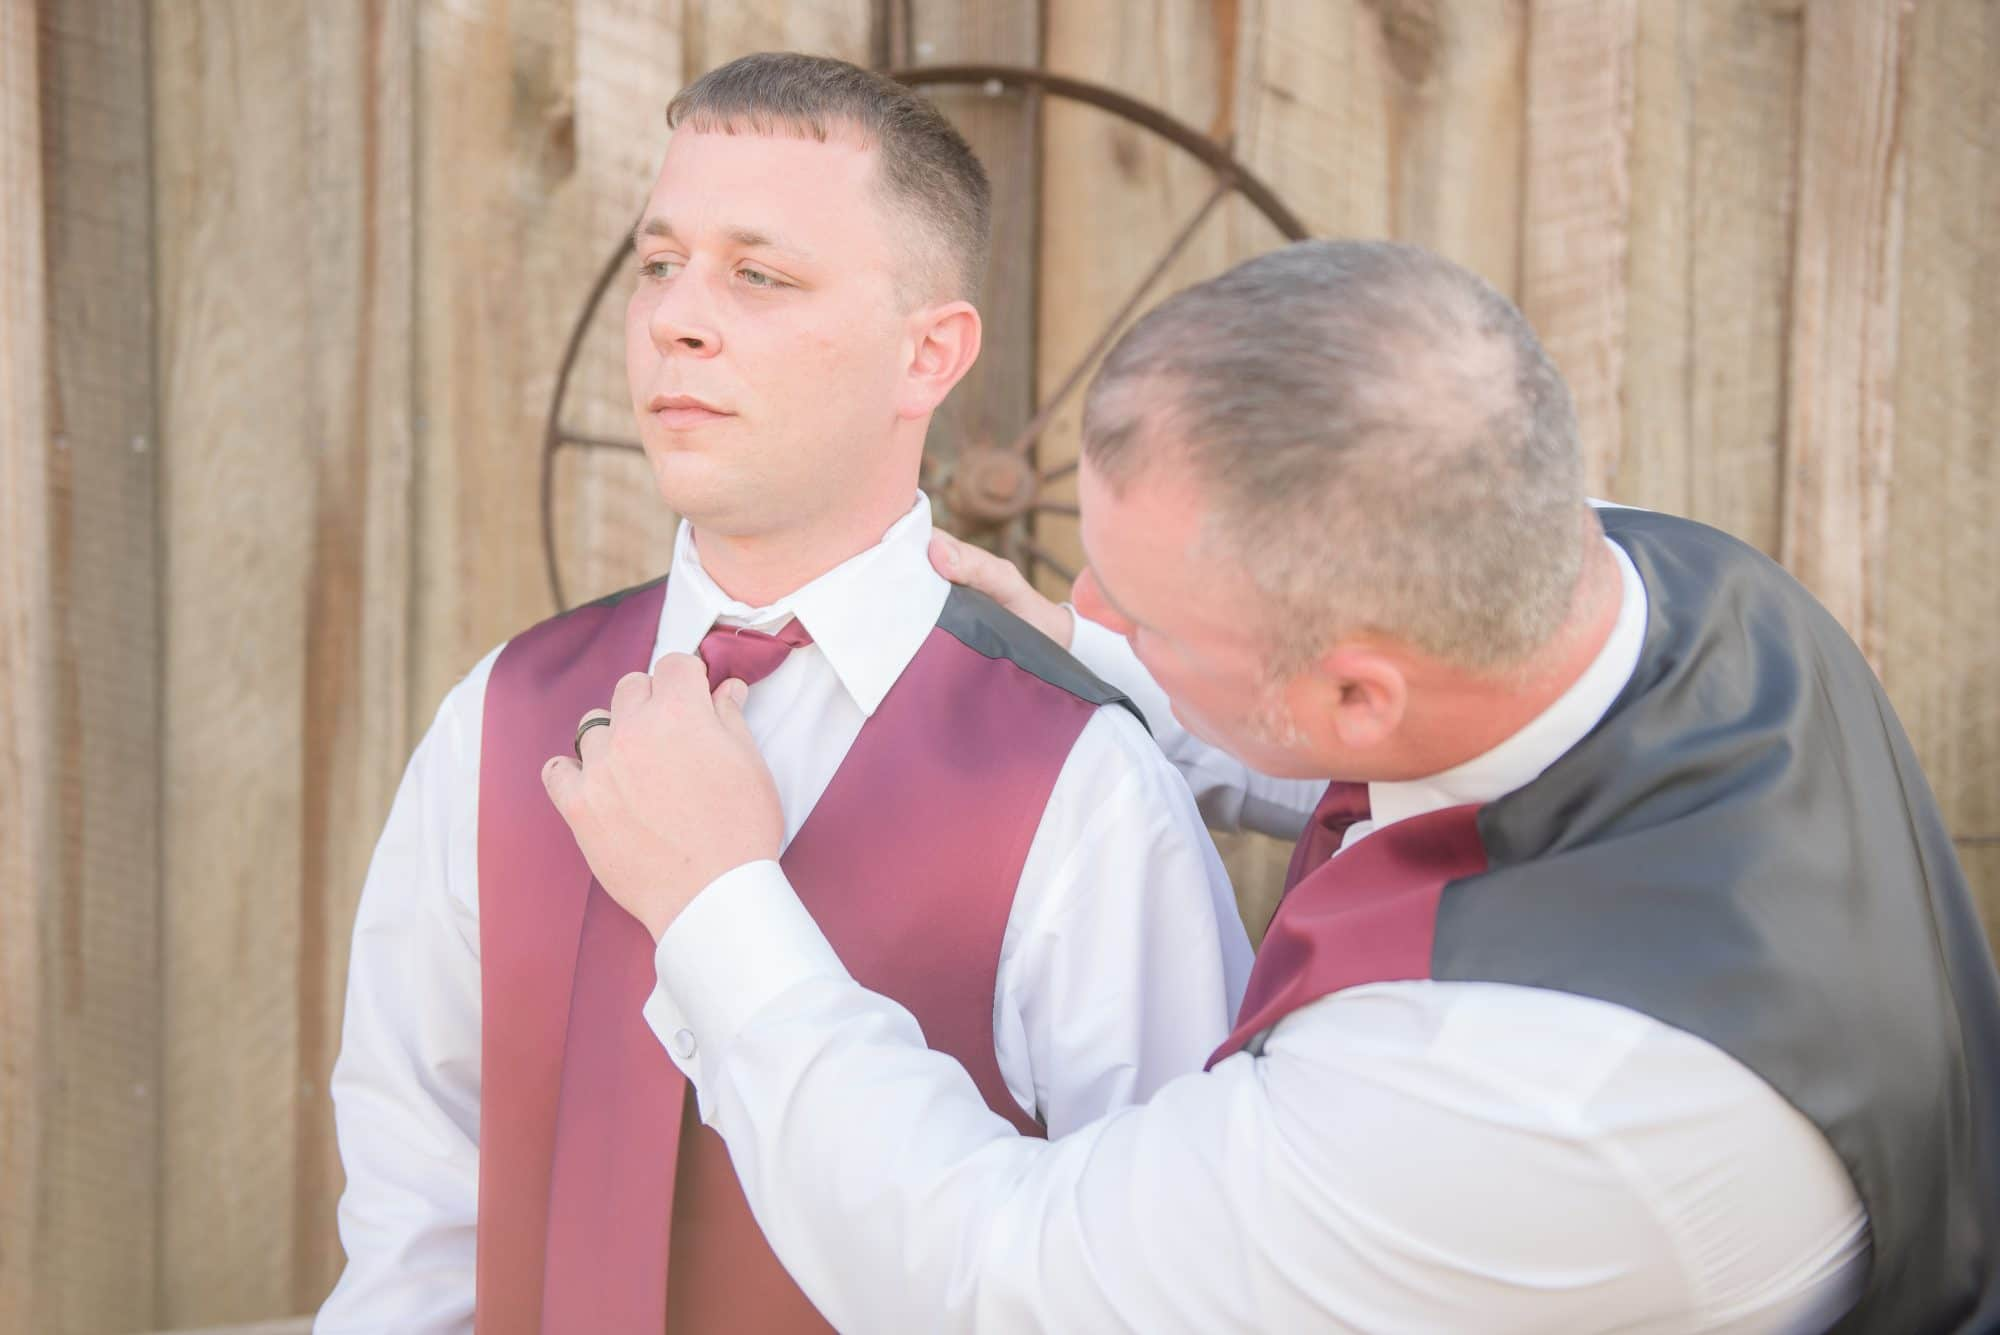 Groom Todd having tie adjusted by father.